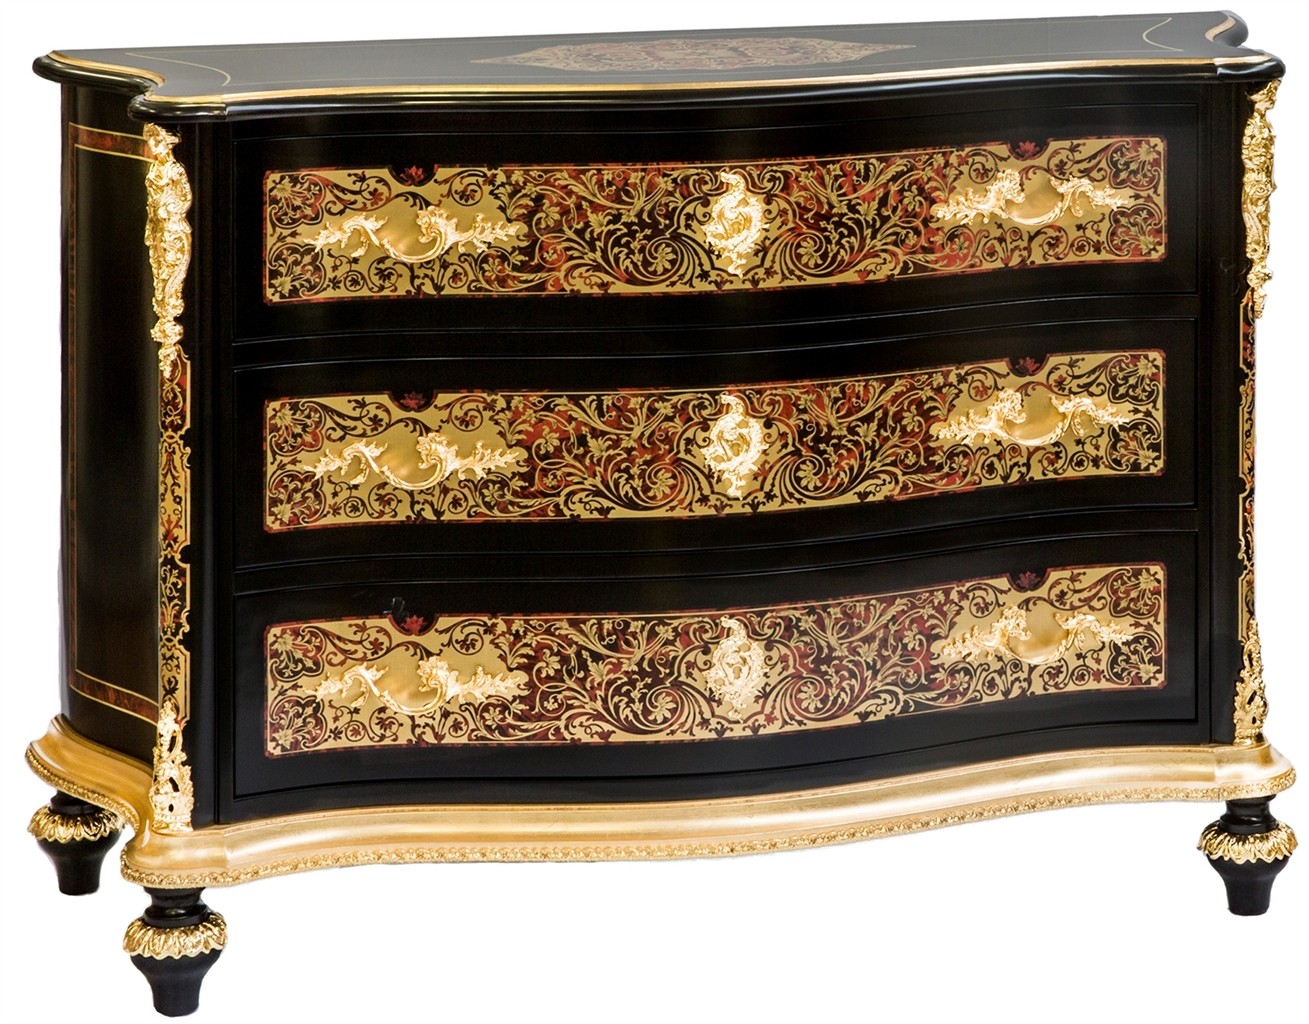 Boulle chest of drawers